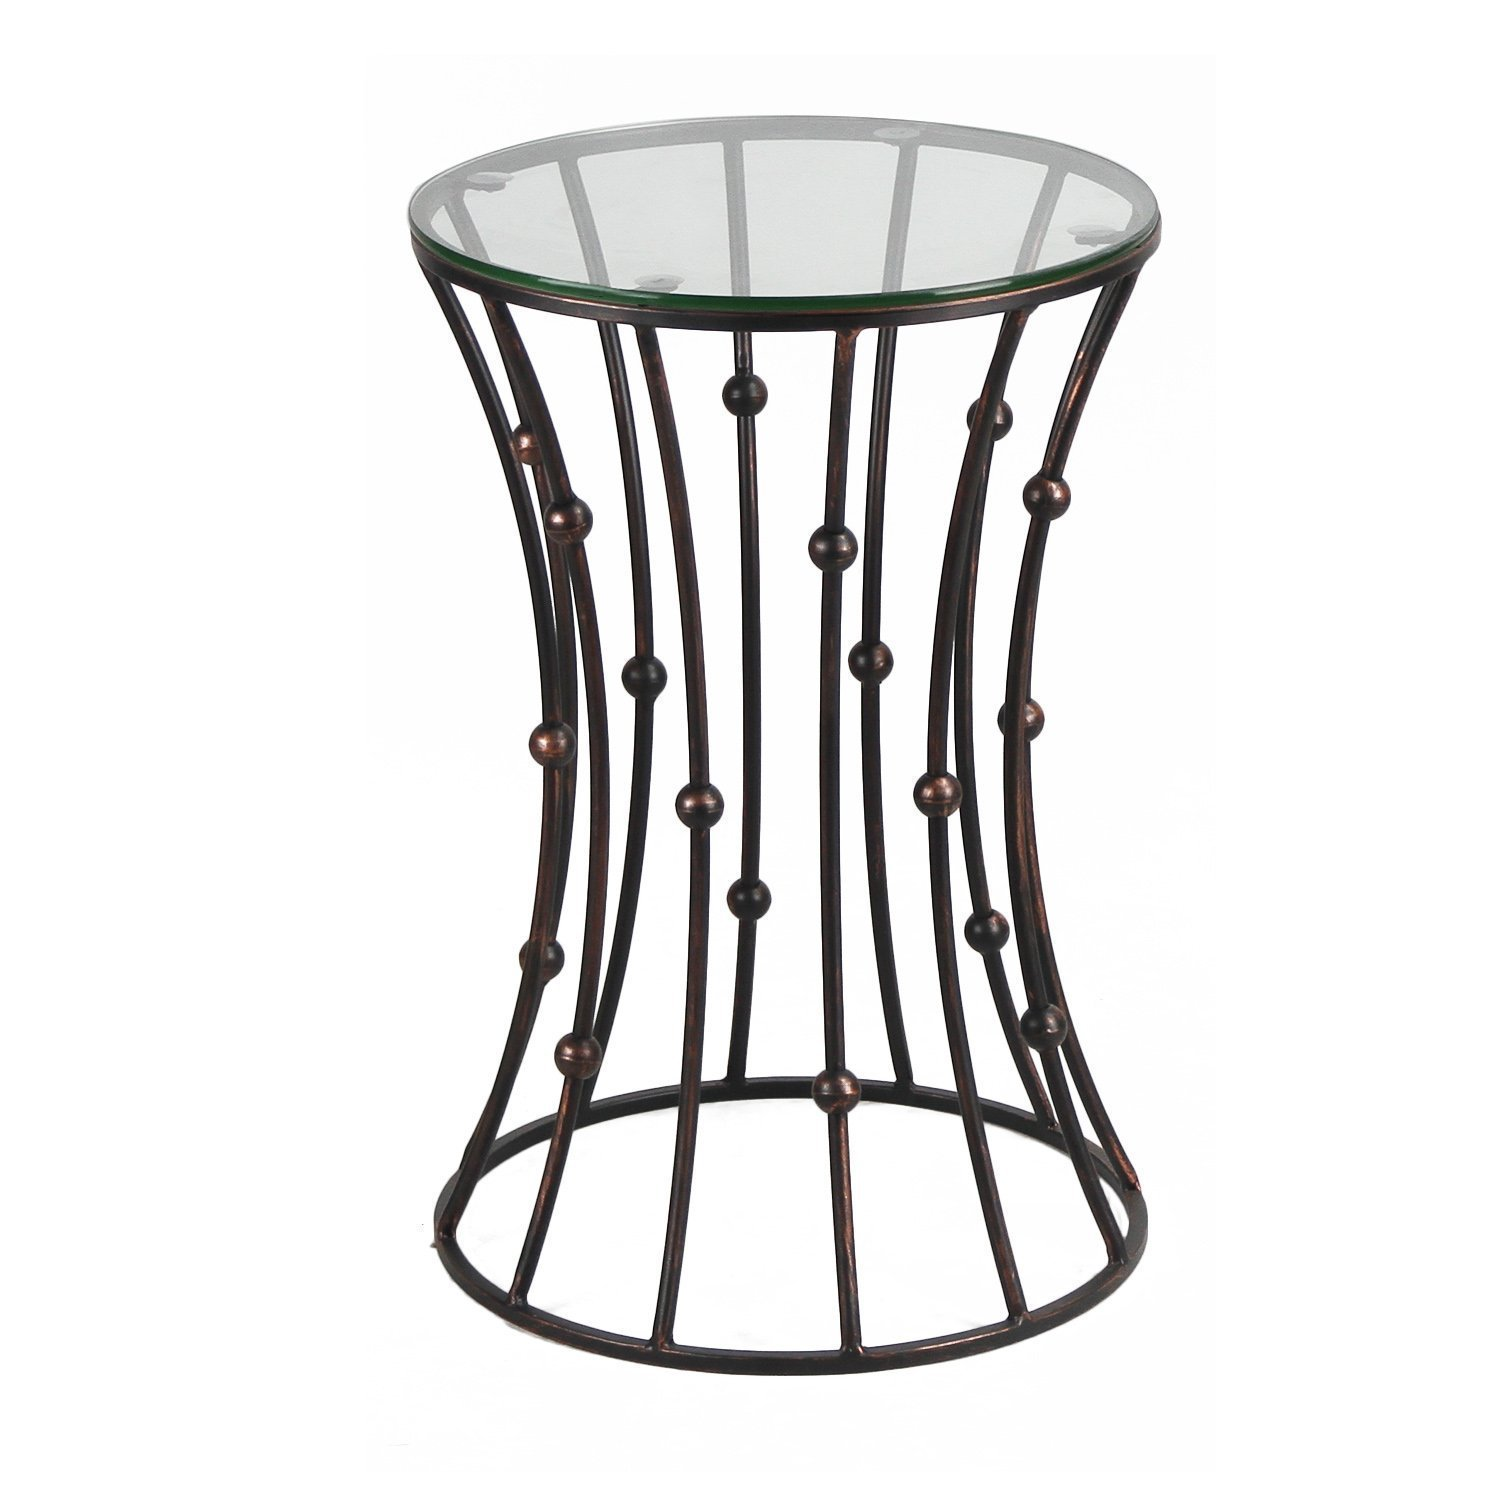 Drum Shaped Coffee Table.Decenthome Accent Metal Wire End Side Coffee Table Black Drum Shape